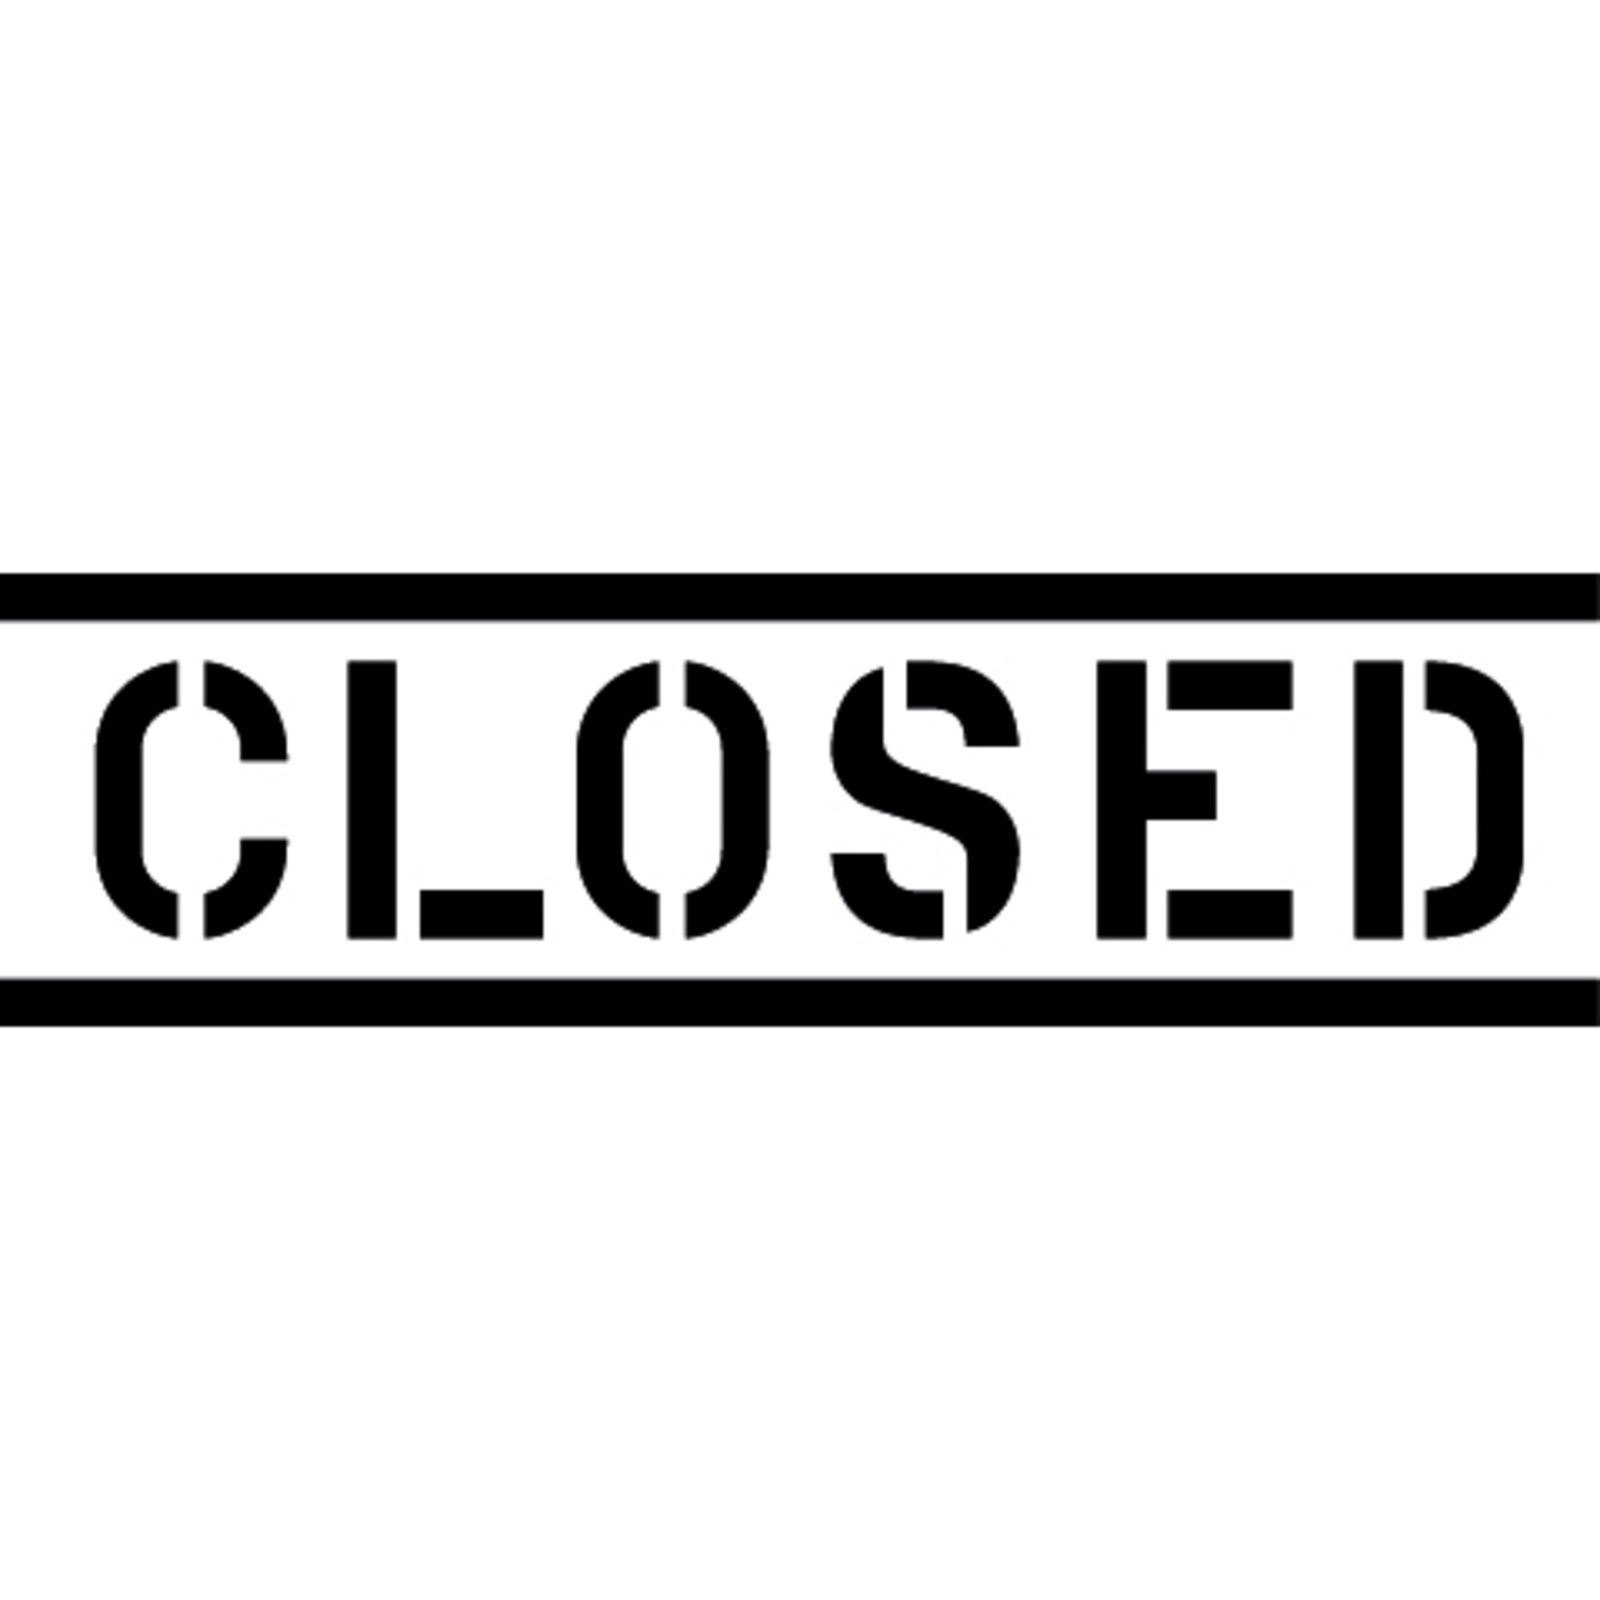 CLOSED (Image 1)